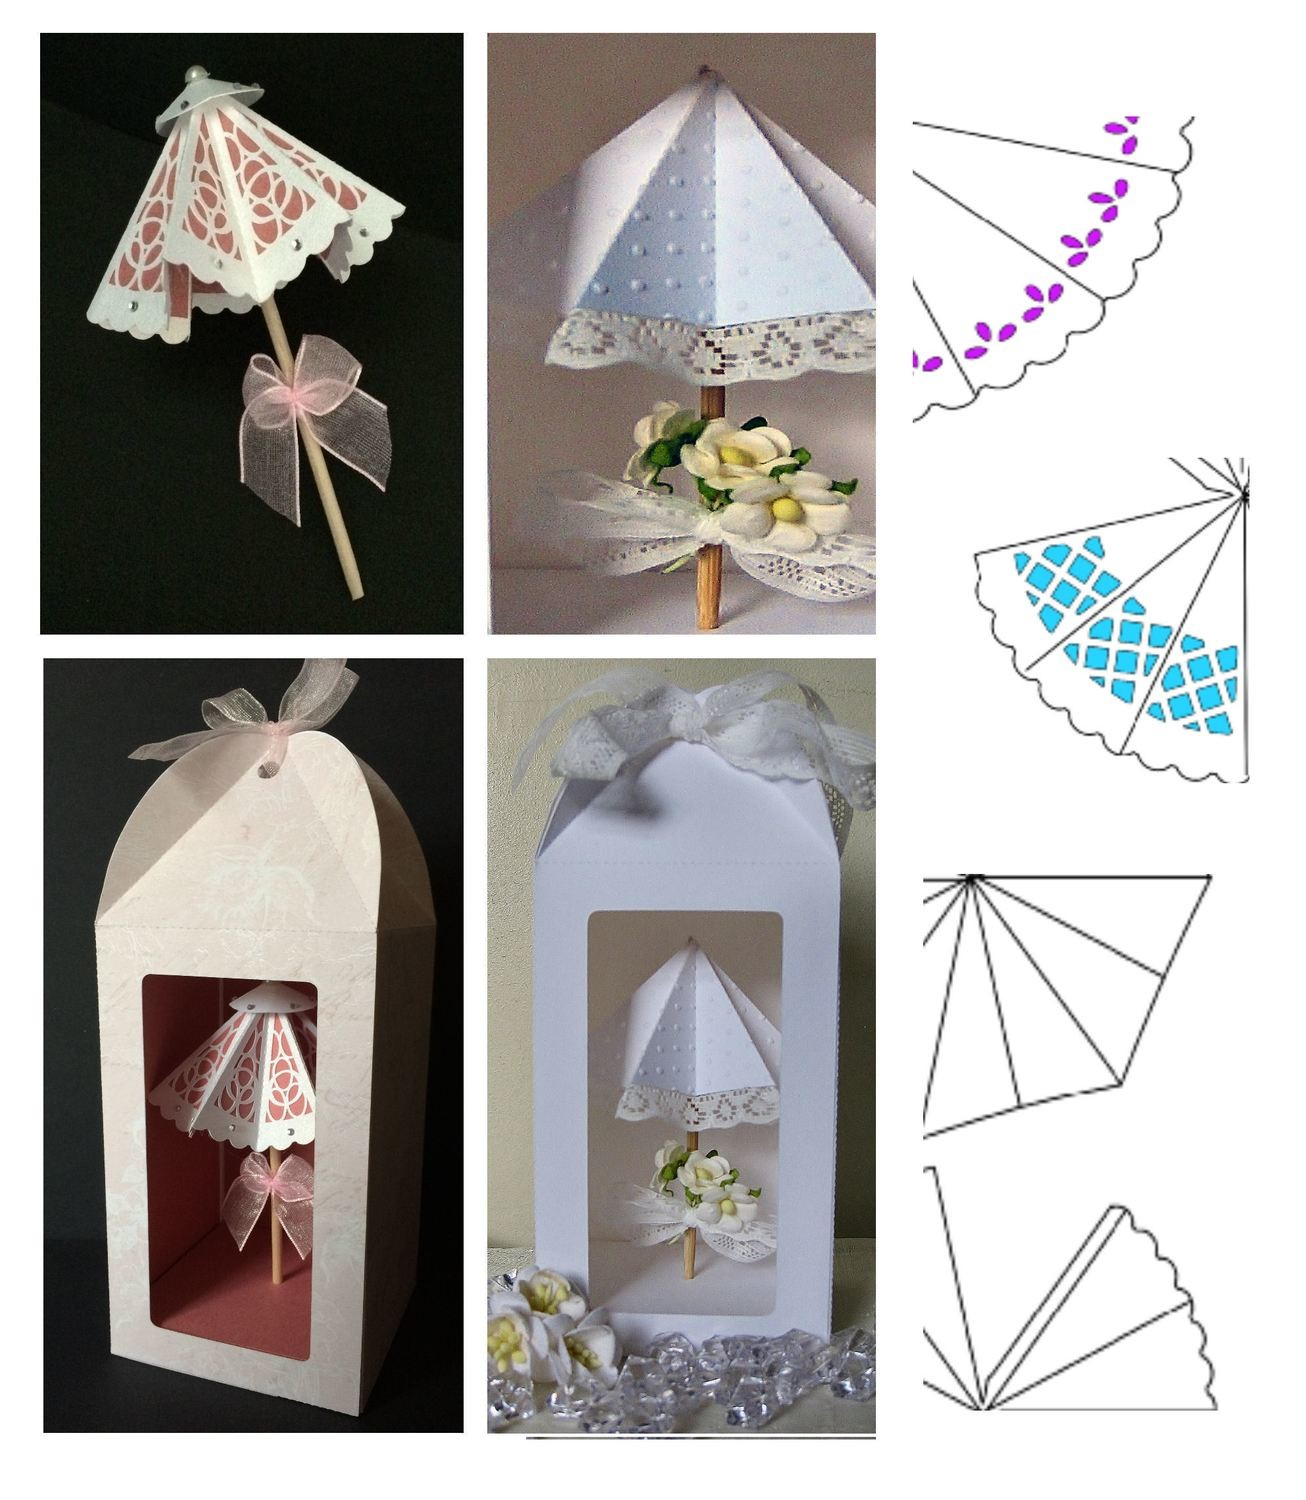 Parasol set with box -  5 different parasol designs included.